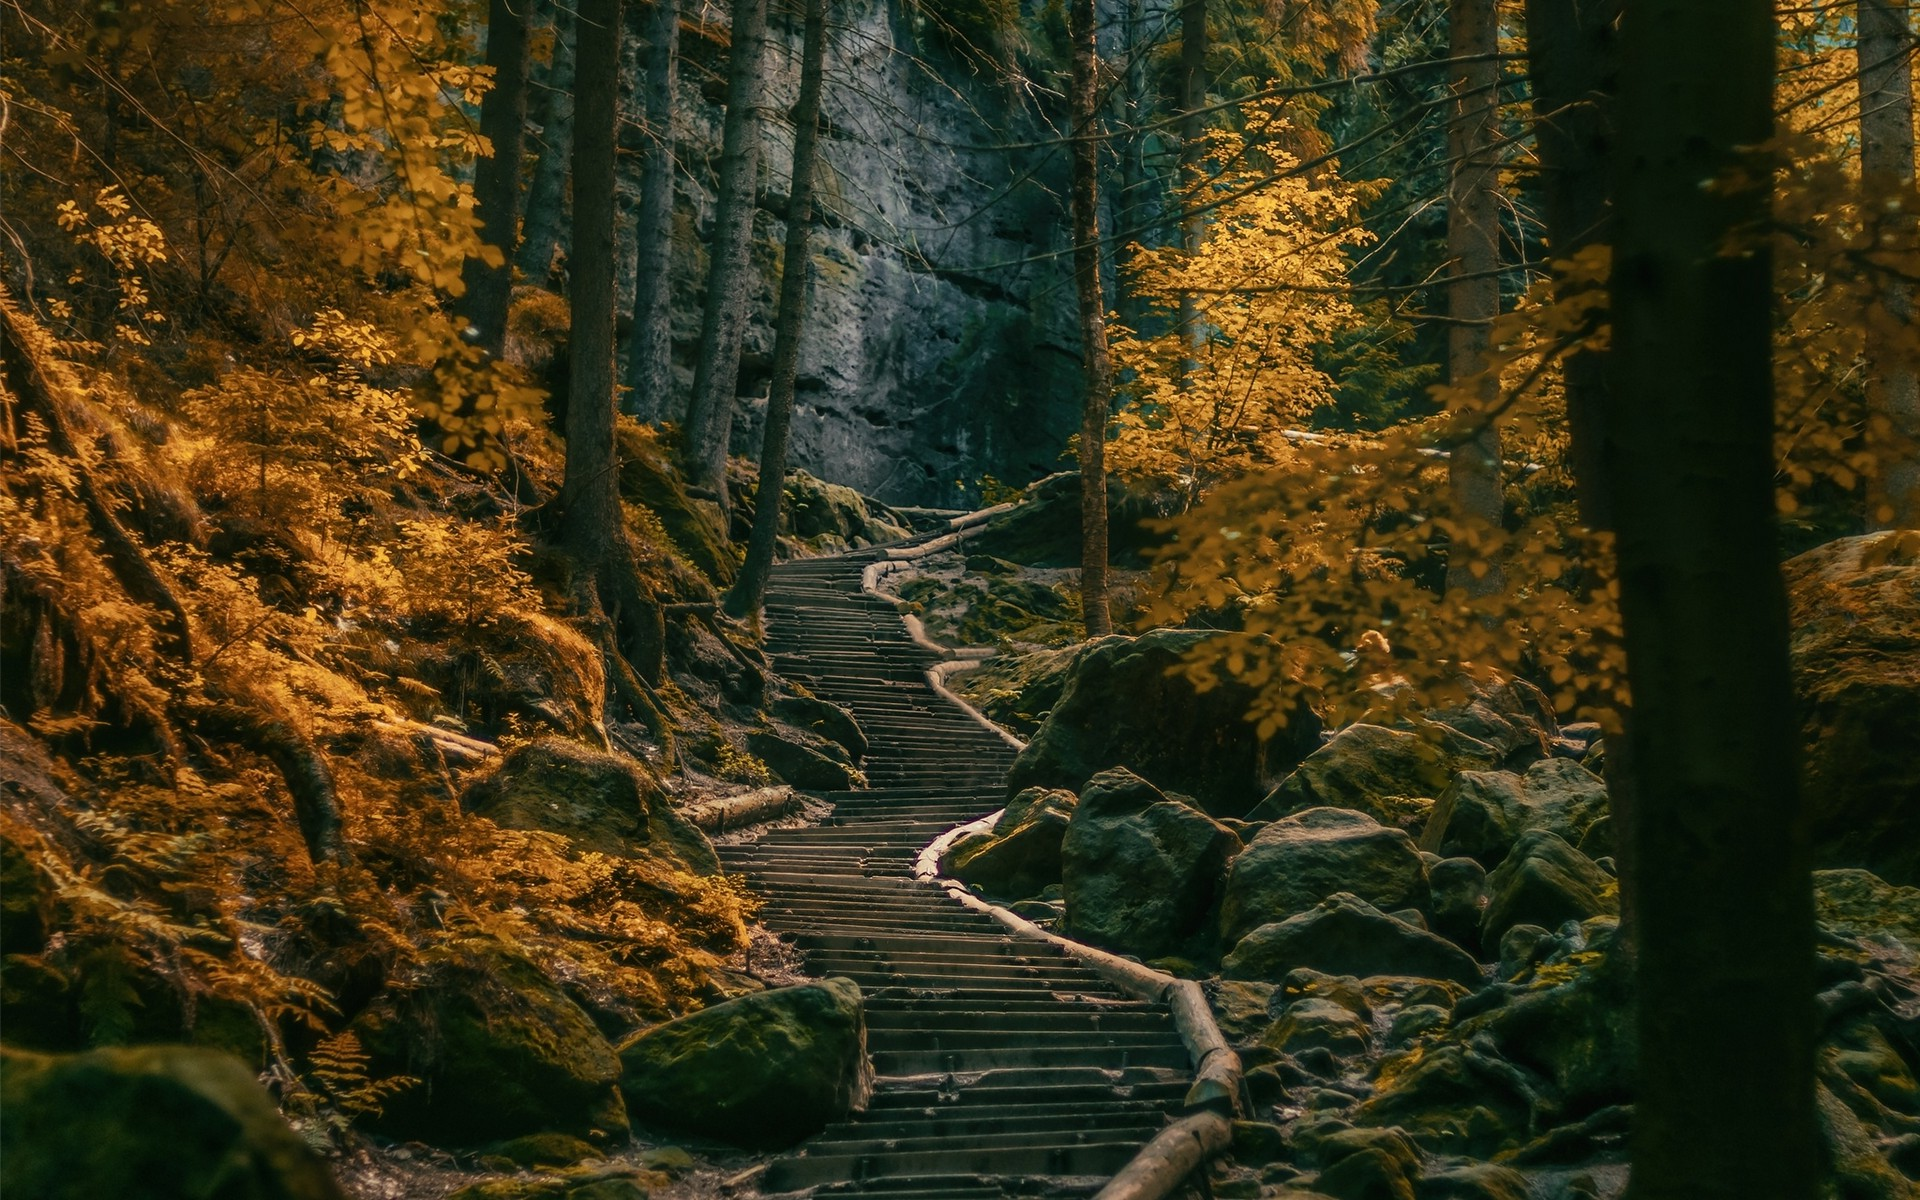 Free Full Screen Fall Wallpaper Path Stairs Dark Forest Germany Nature Landscape